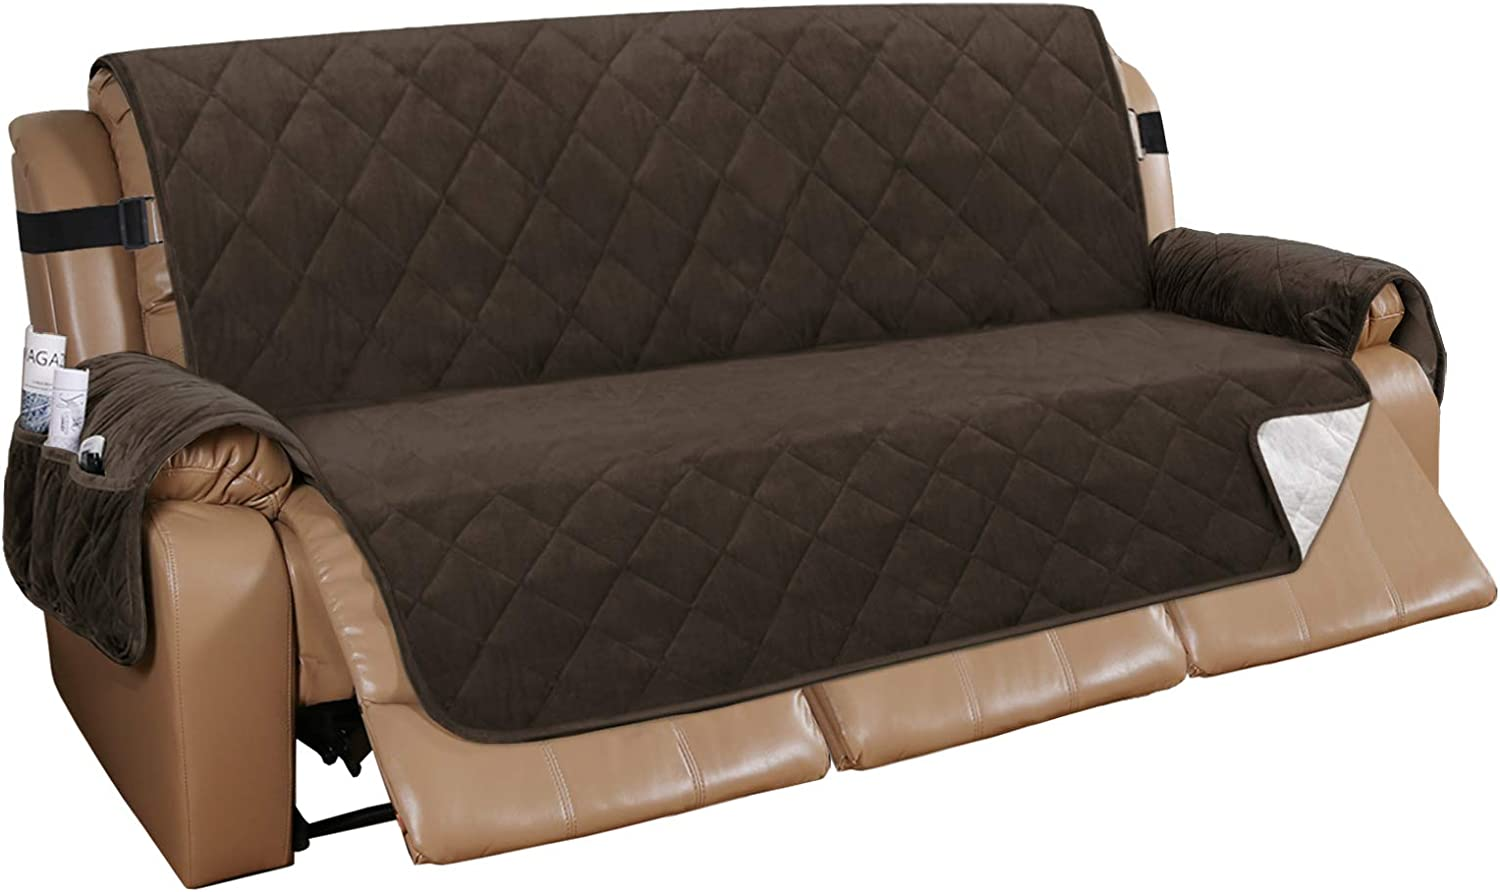 Recliner Sofa Cover Velvet Recliner Sofa Slipcover Couch Covers for 3 Cushion Couch Quilted Recliner Cover Slip Resistant Sofa Furniture Cover with Straps Seat Width Up to 70